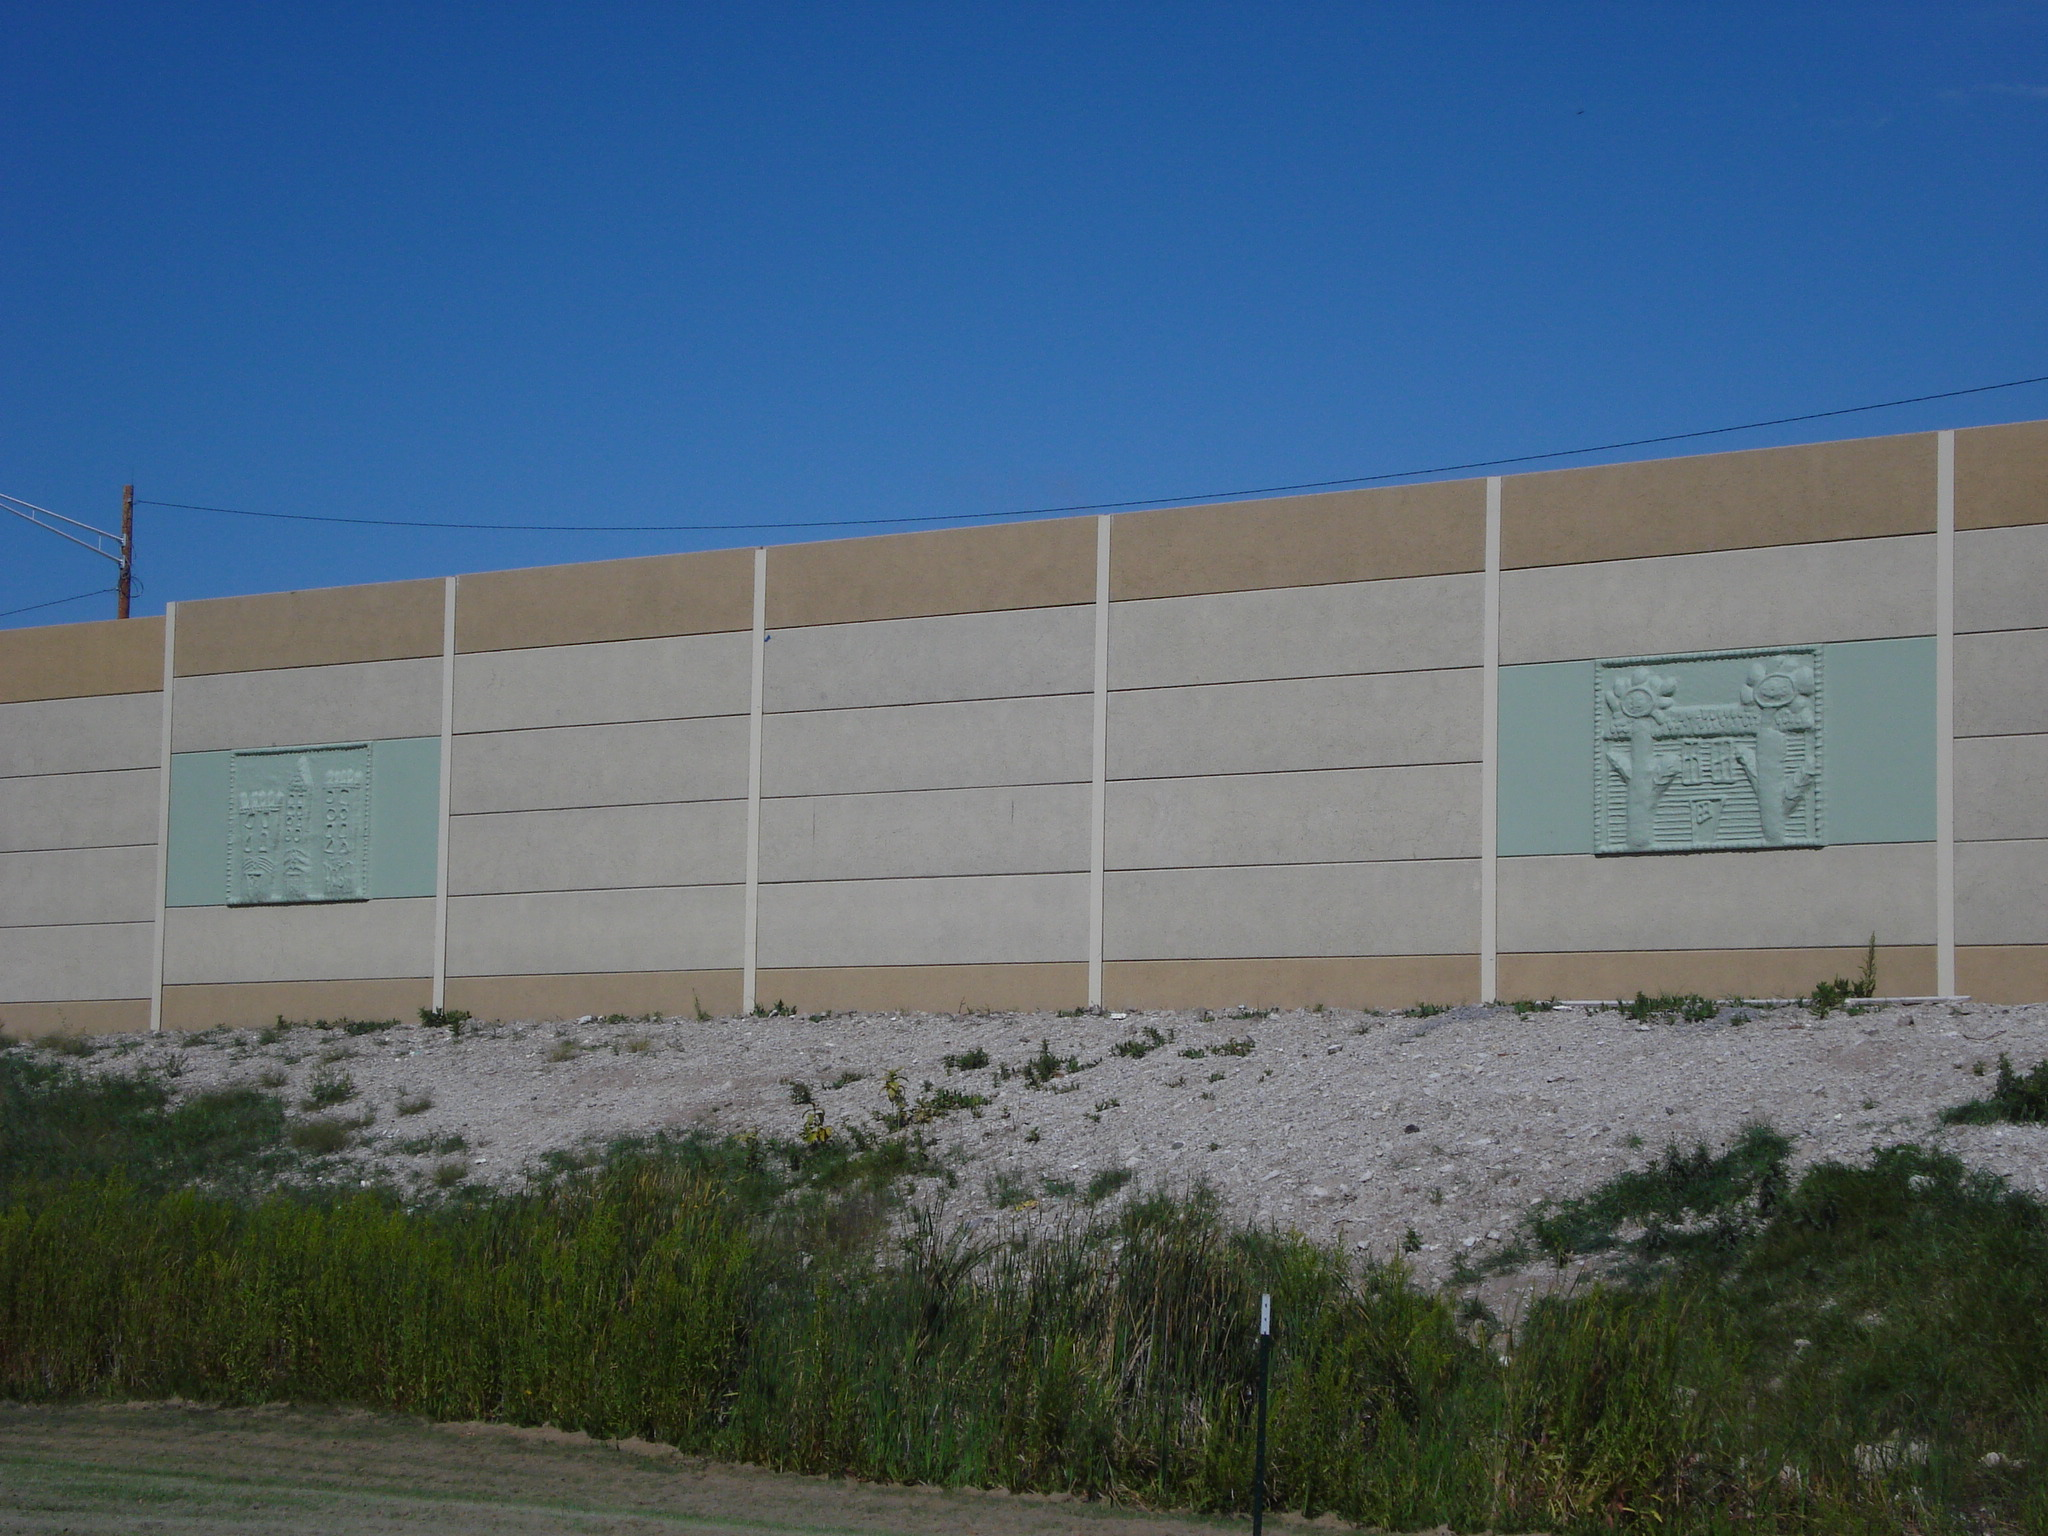 A precast noise barrier featuring custom panels created from children's drawings along I-94 in Milwaukee, WI.